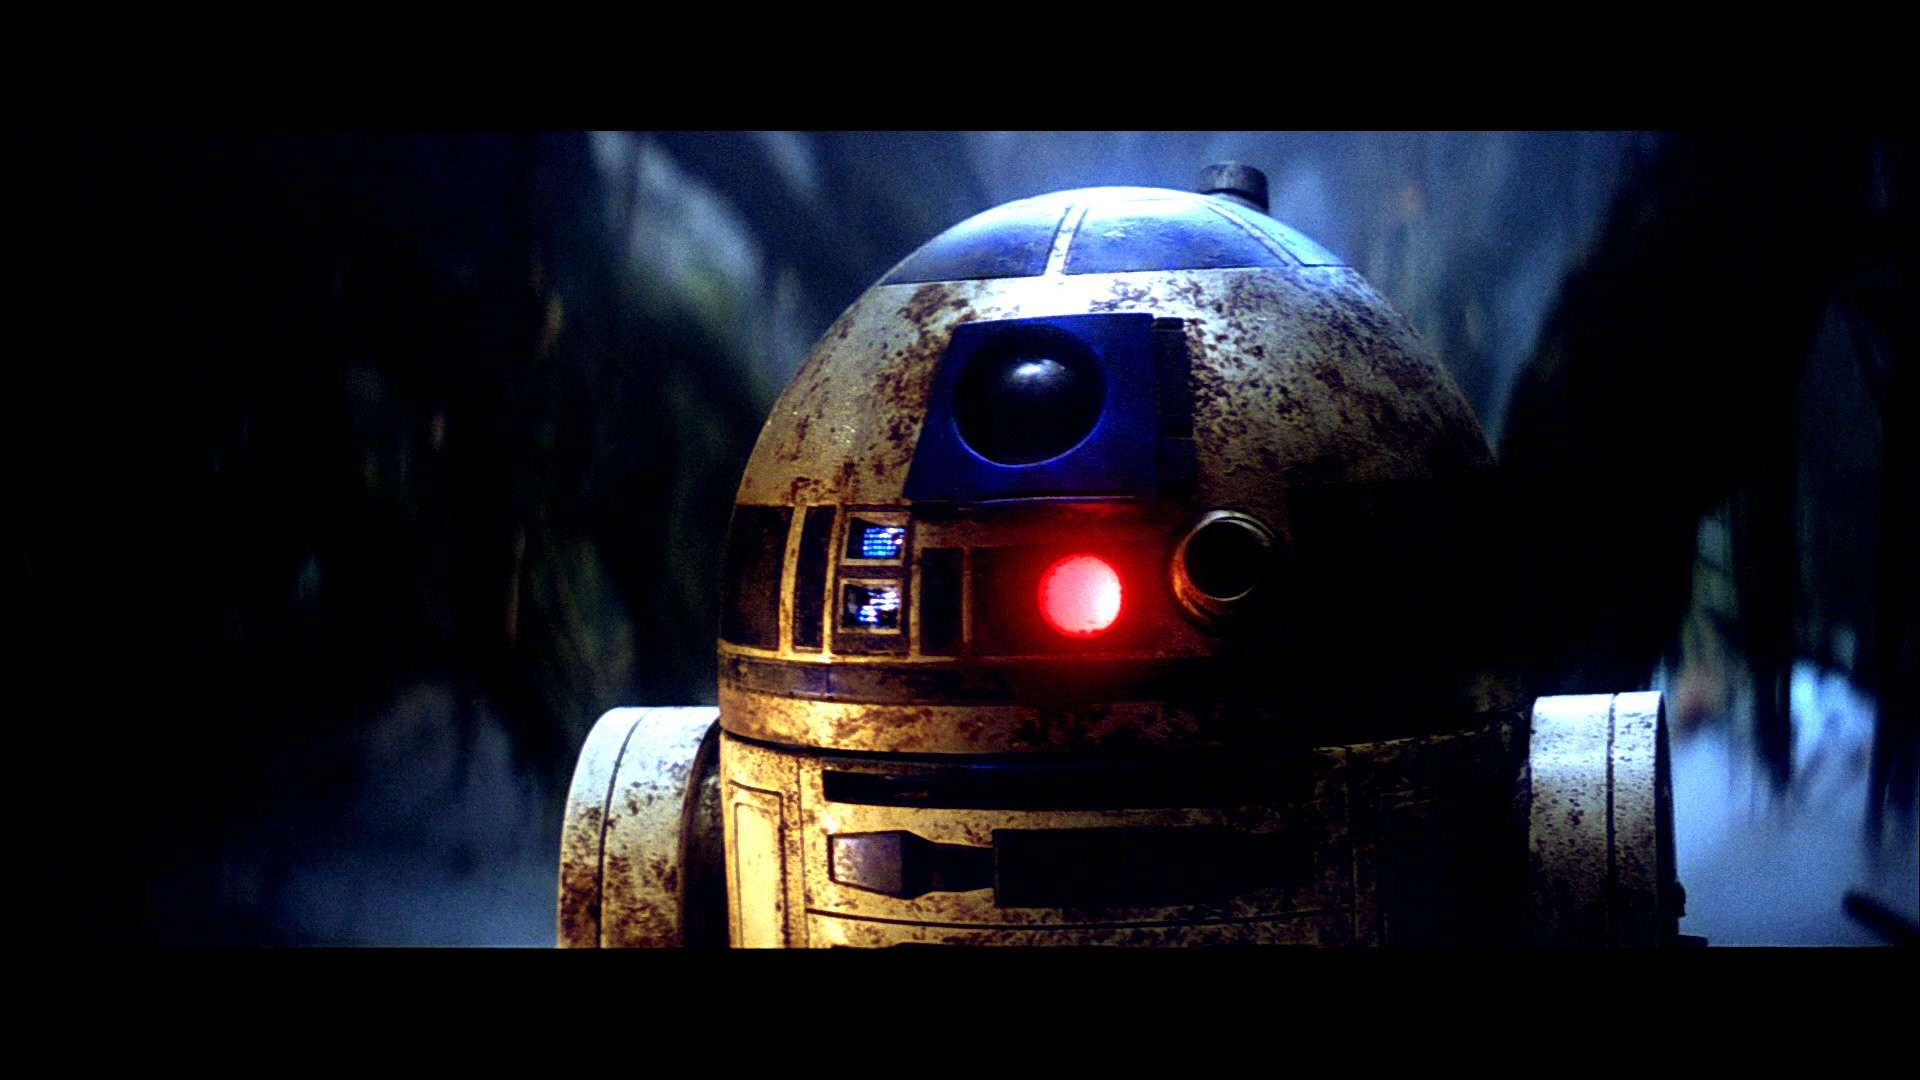 R2d2 Wallpapers for Android   The Art Mad Wallpapers